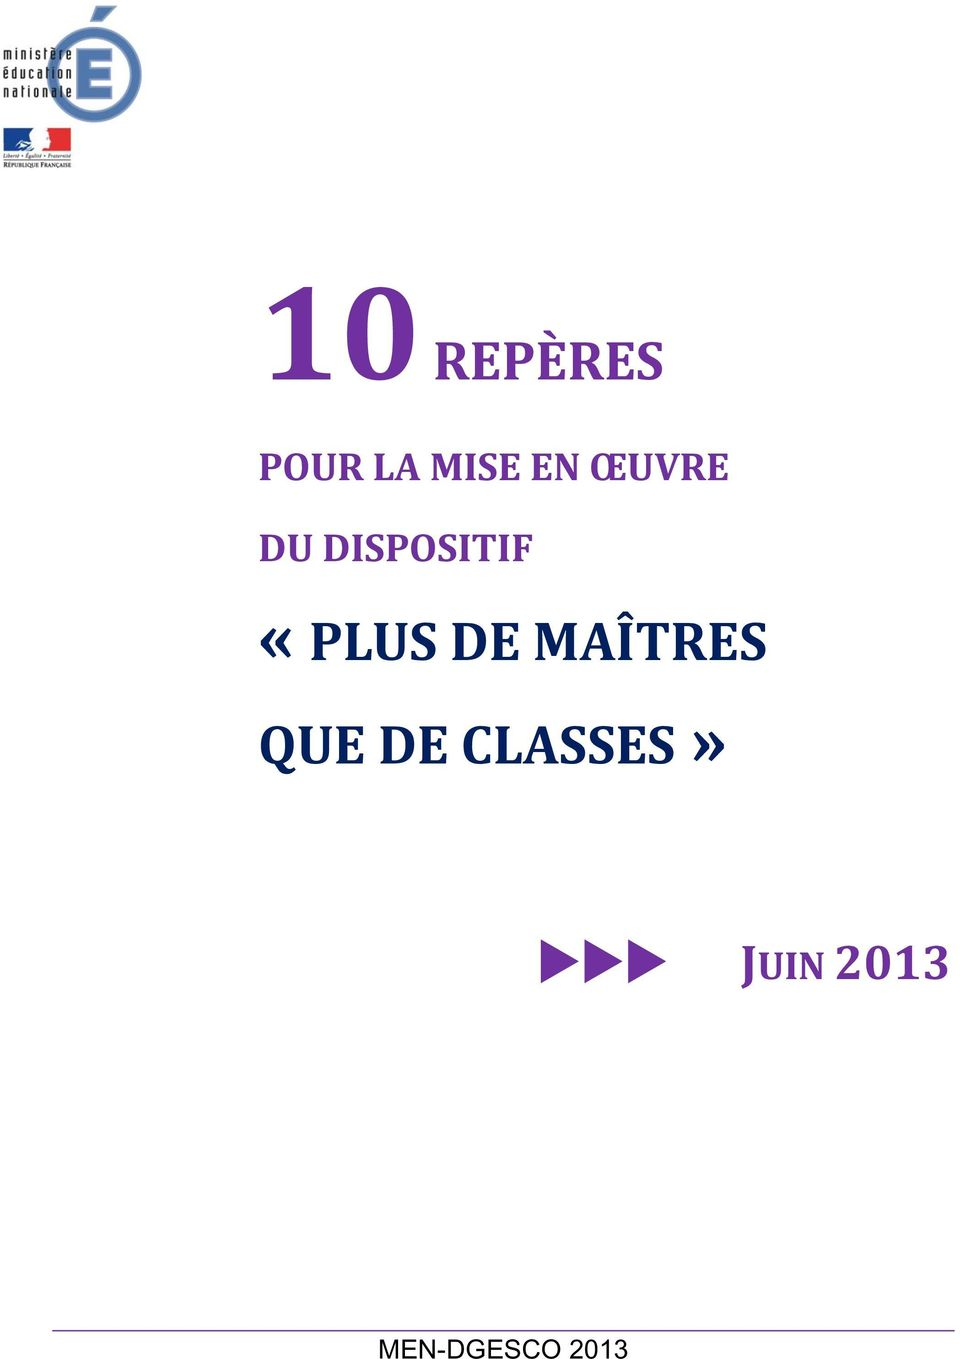 DE MAÎTRES QUE DE CLASSES»